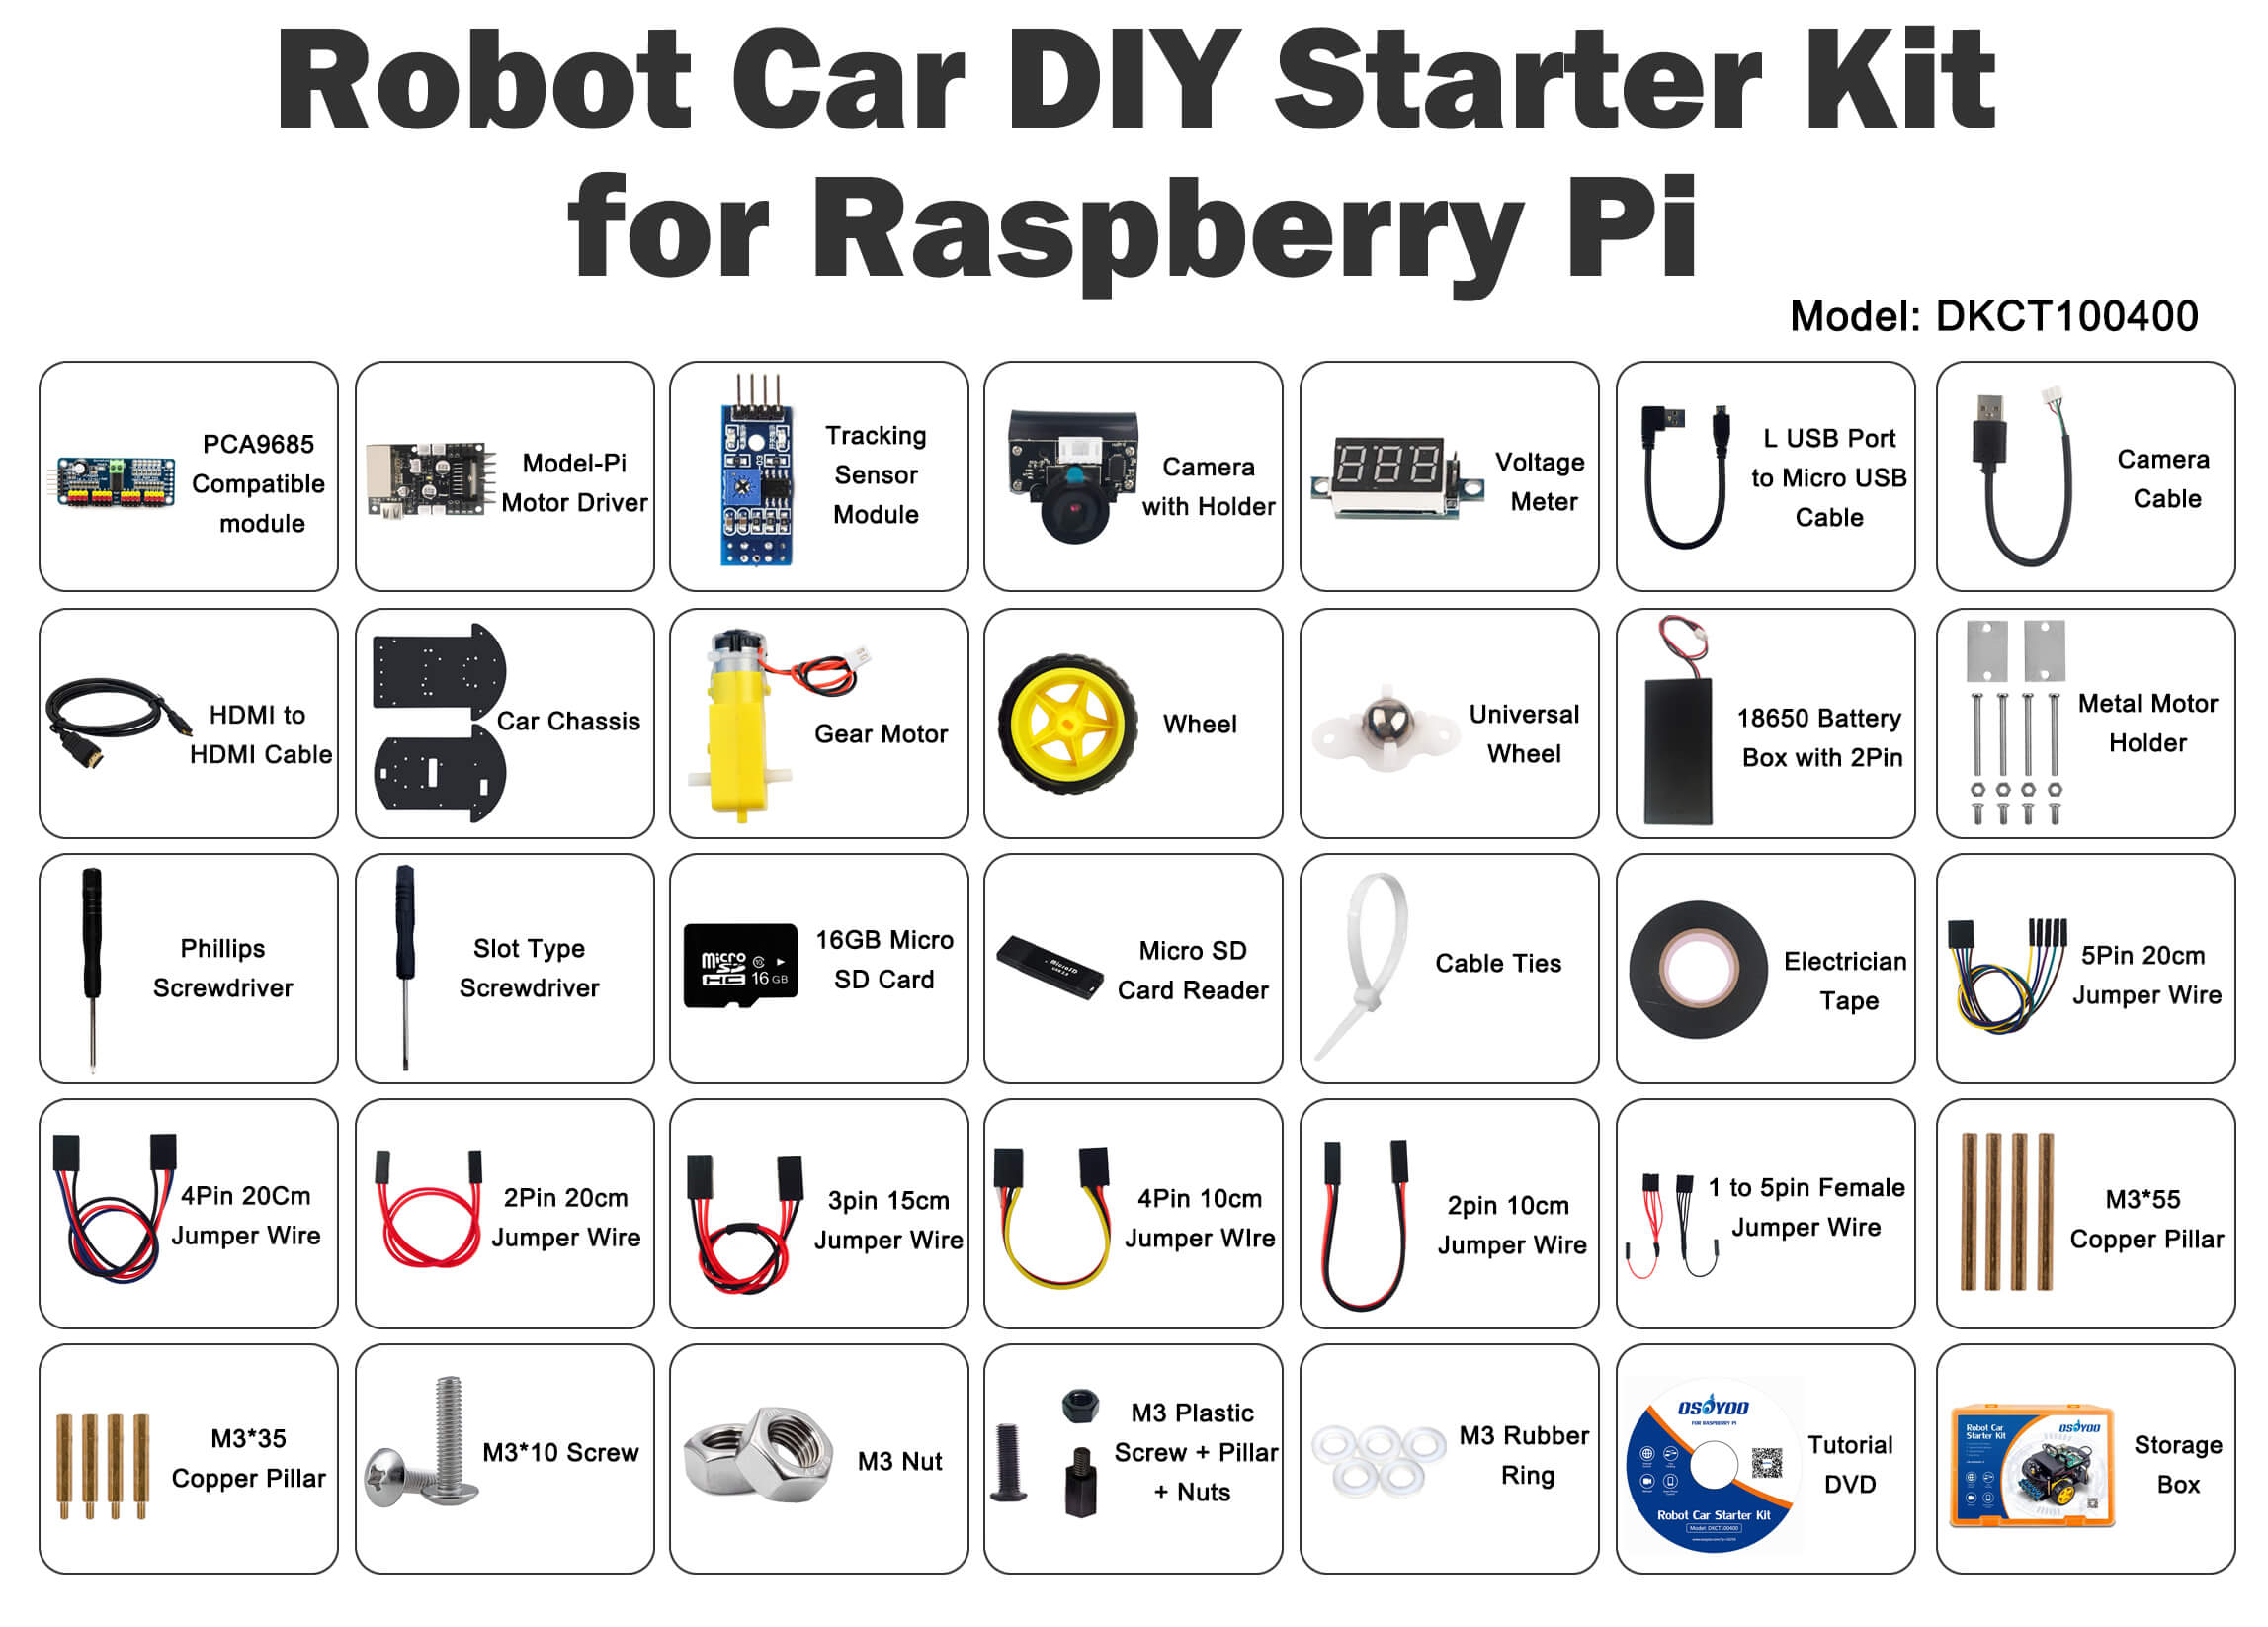 Raspberry Pi Robot Car DIY learning Kit Package Listing